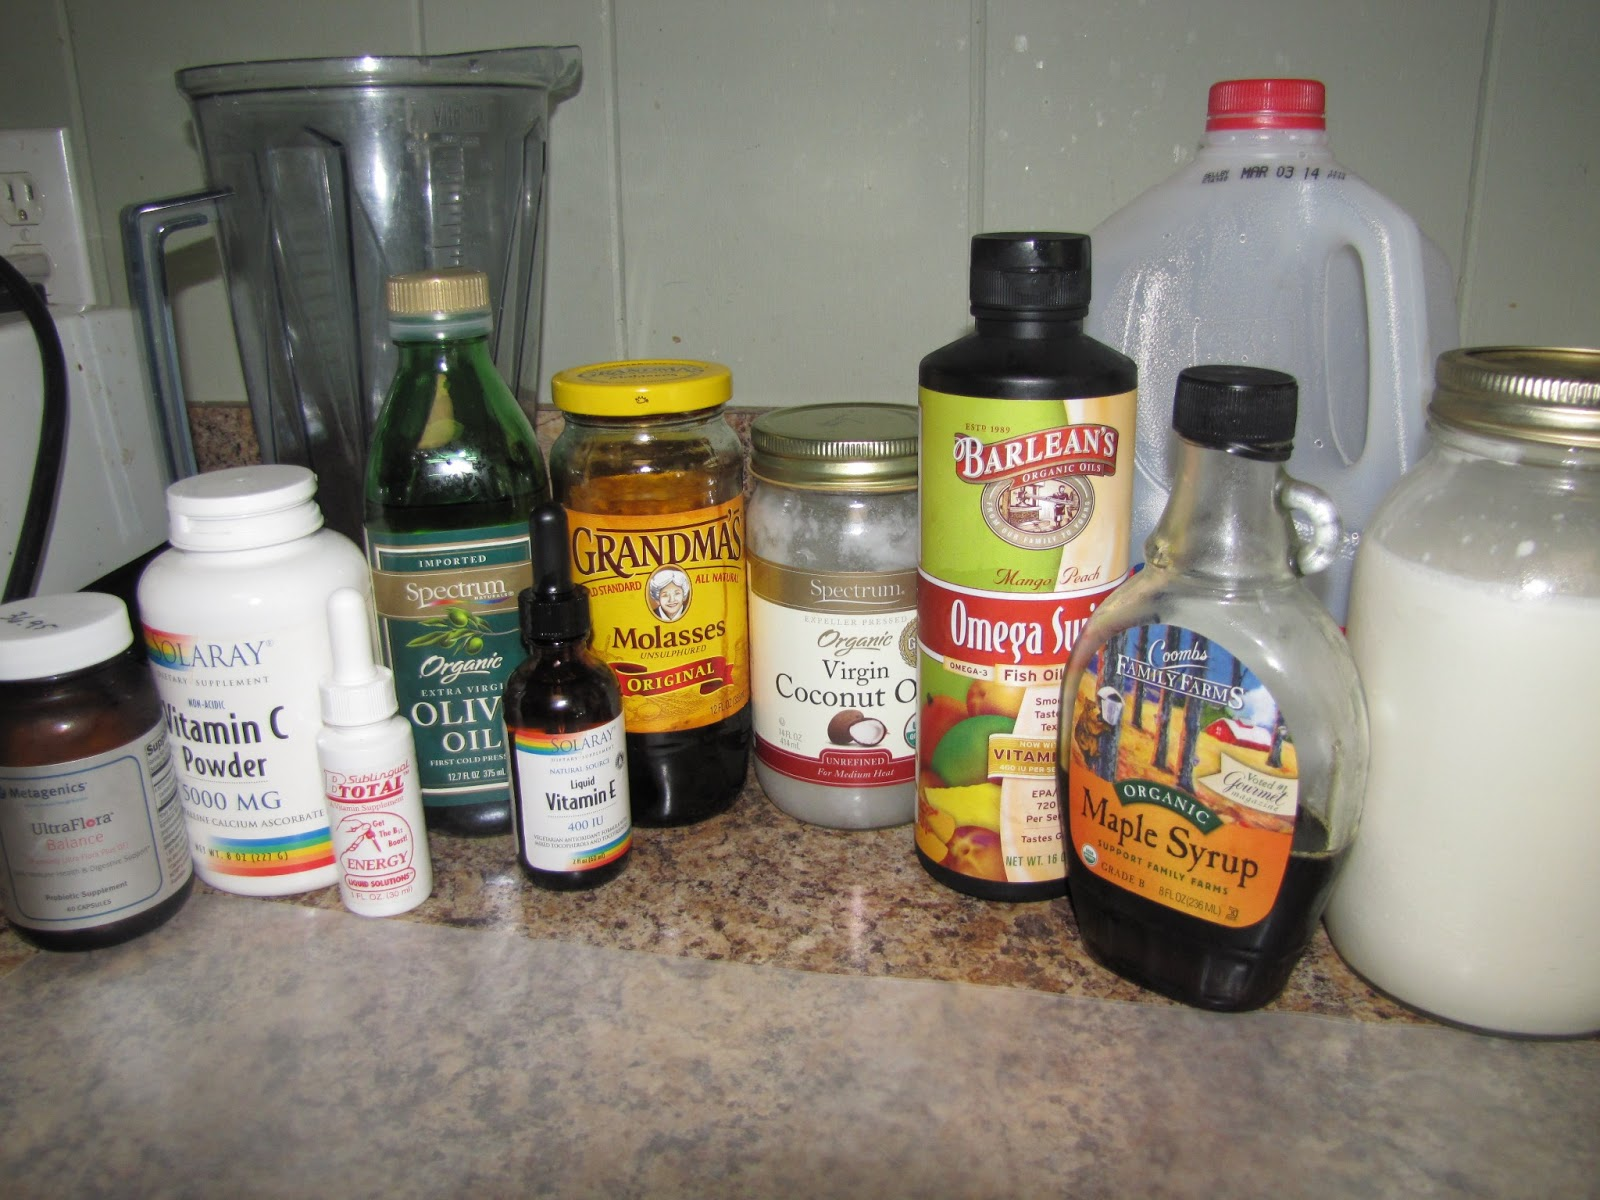 There are several other recipes on Pinterest, but this is the recipe I use: Goat's Milk Formula 2 cups goats milk (I've used Meyenberg goat milk from Kroger ...